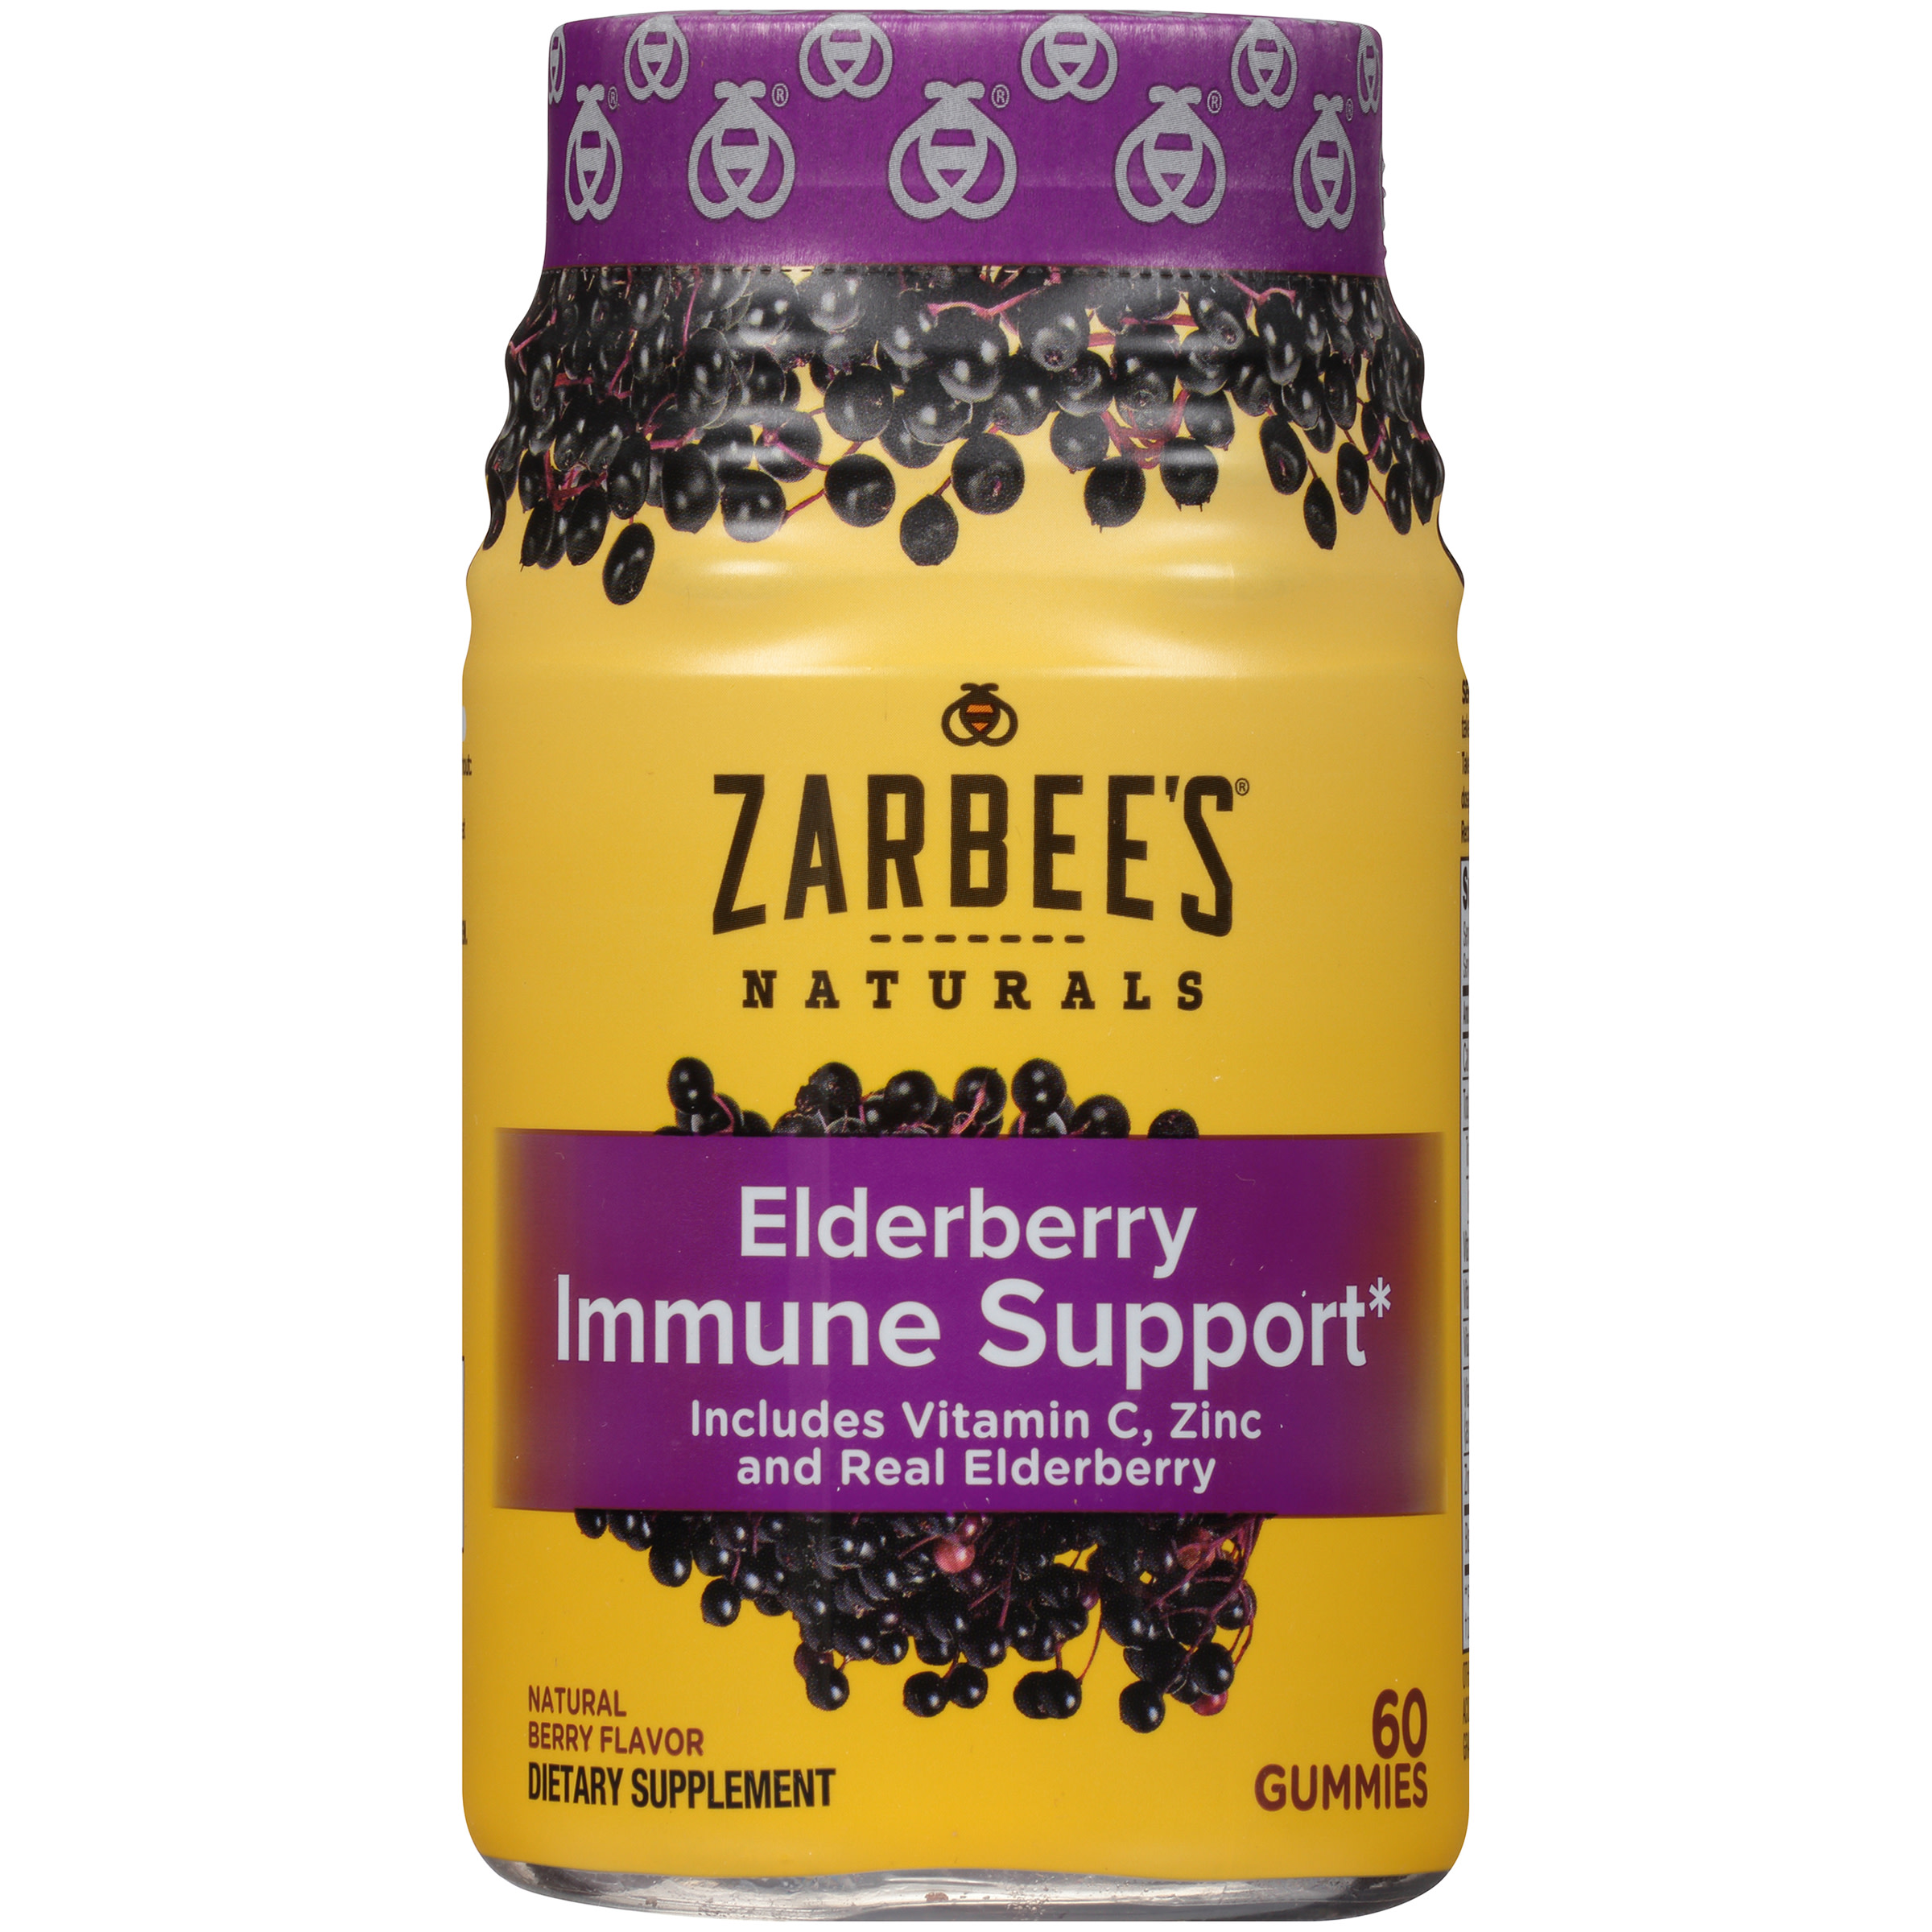 Zarbee's Naturals Elderberry Immune Support Gummy